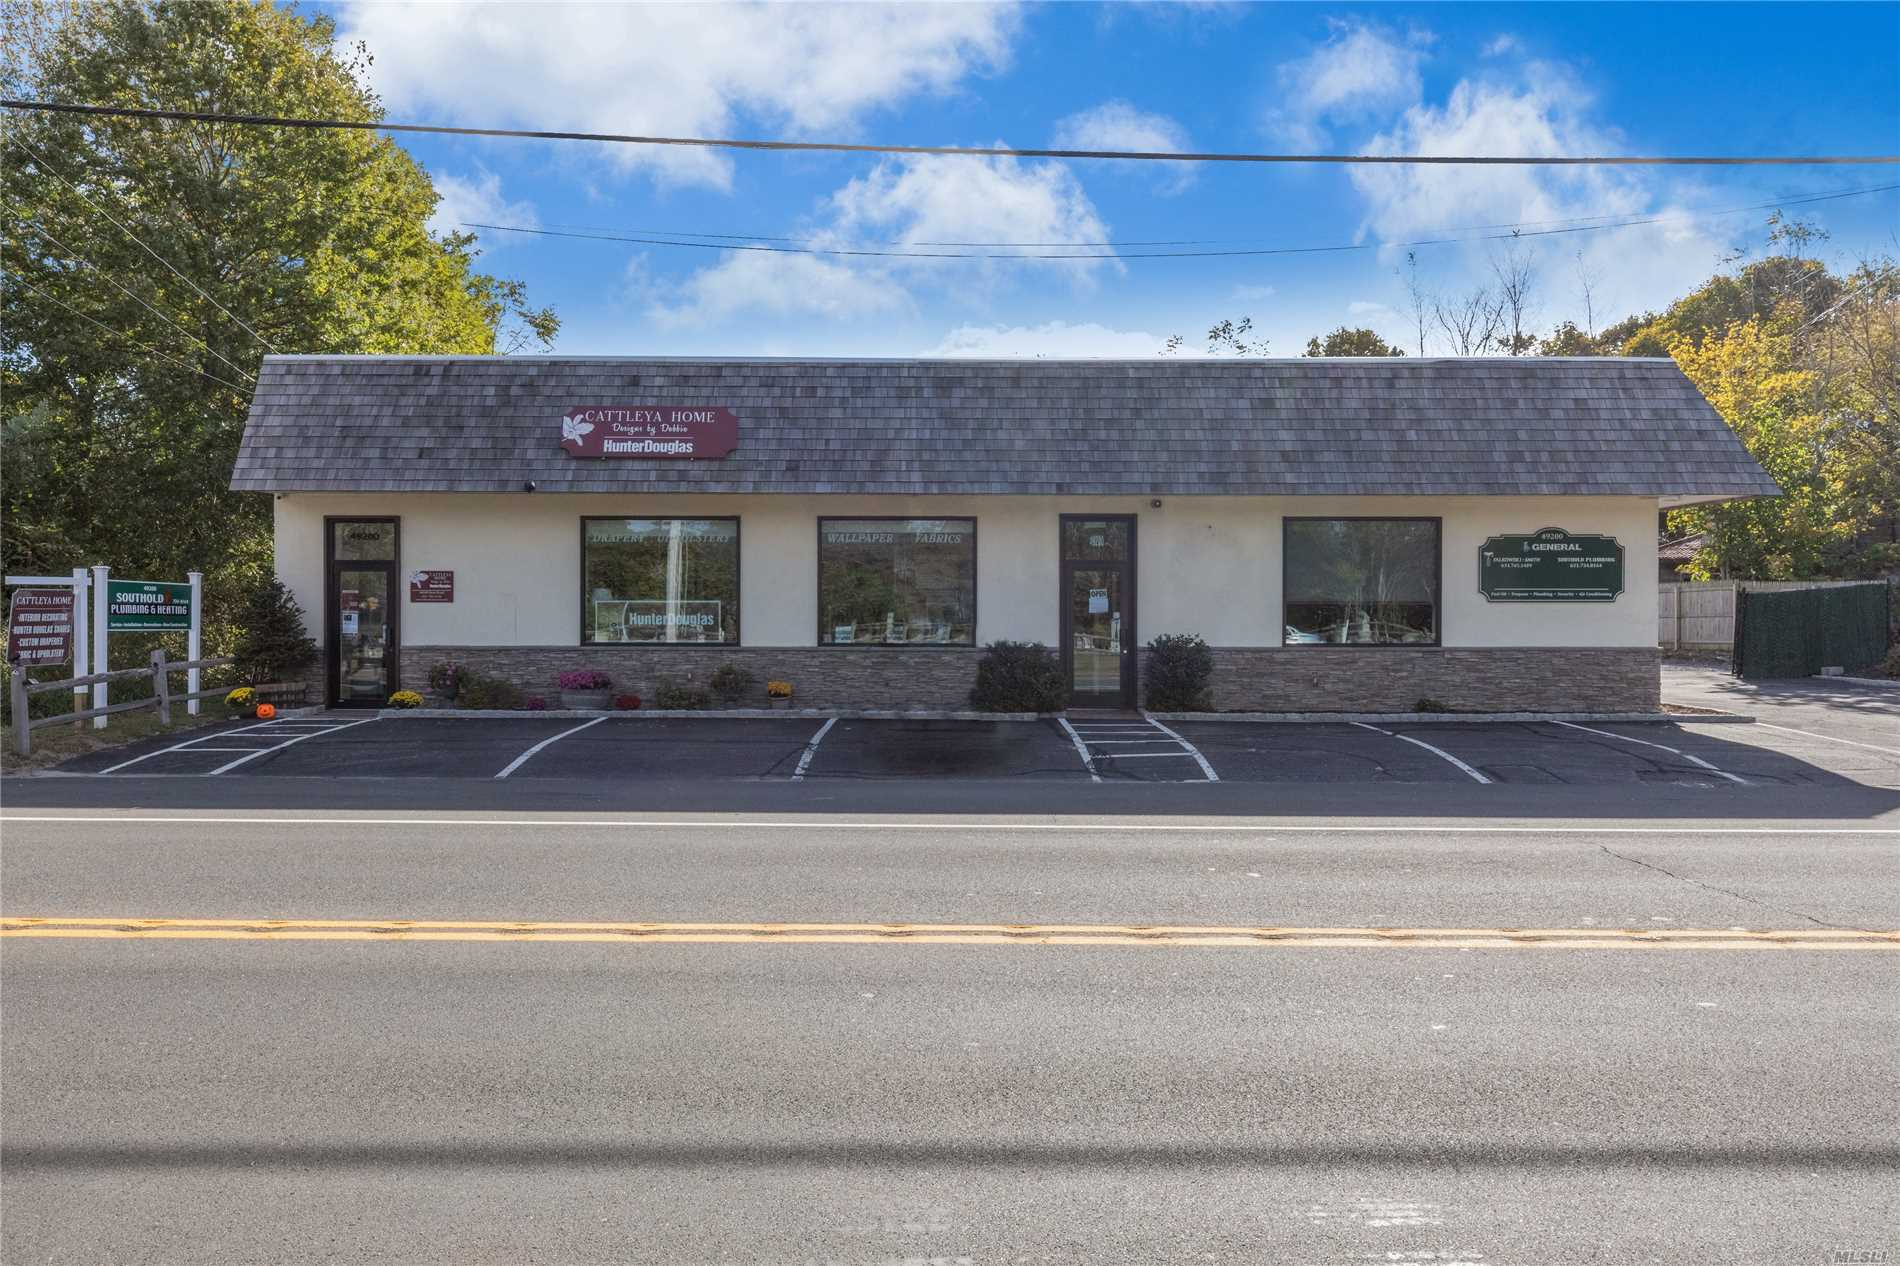 Opportunity Abounds! Multi-Purpose Building With Two Separate Retail Or Office Suites At Highly Visible Main Rd Location. Each Suite Has Their Own Updated Bathroom Facilities. Large 2 + Bay Storage Barn With Loft And Separate New Morton Building.1980 Sq.Ft. Office.Retail, 1031 Sq.Ft. 2+ Garage, 422 Sq.Ft. Morton Building.